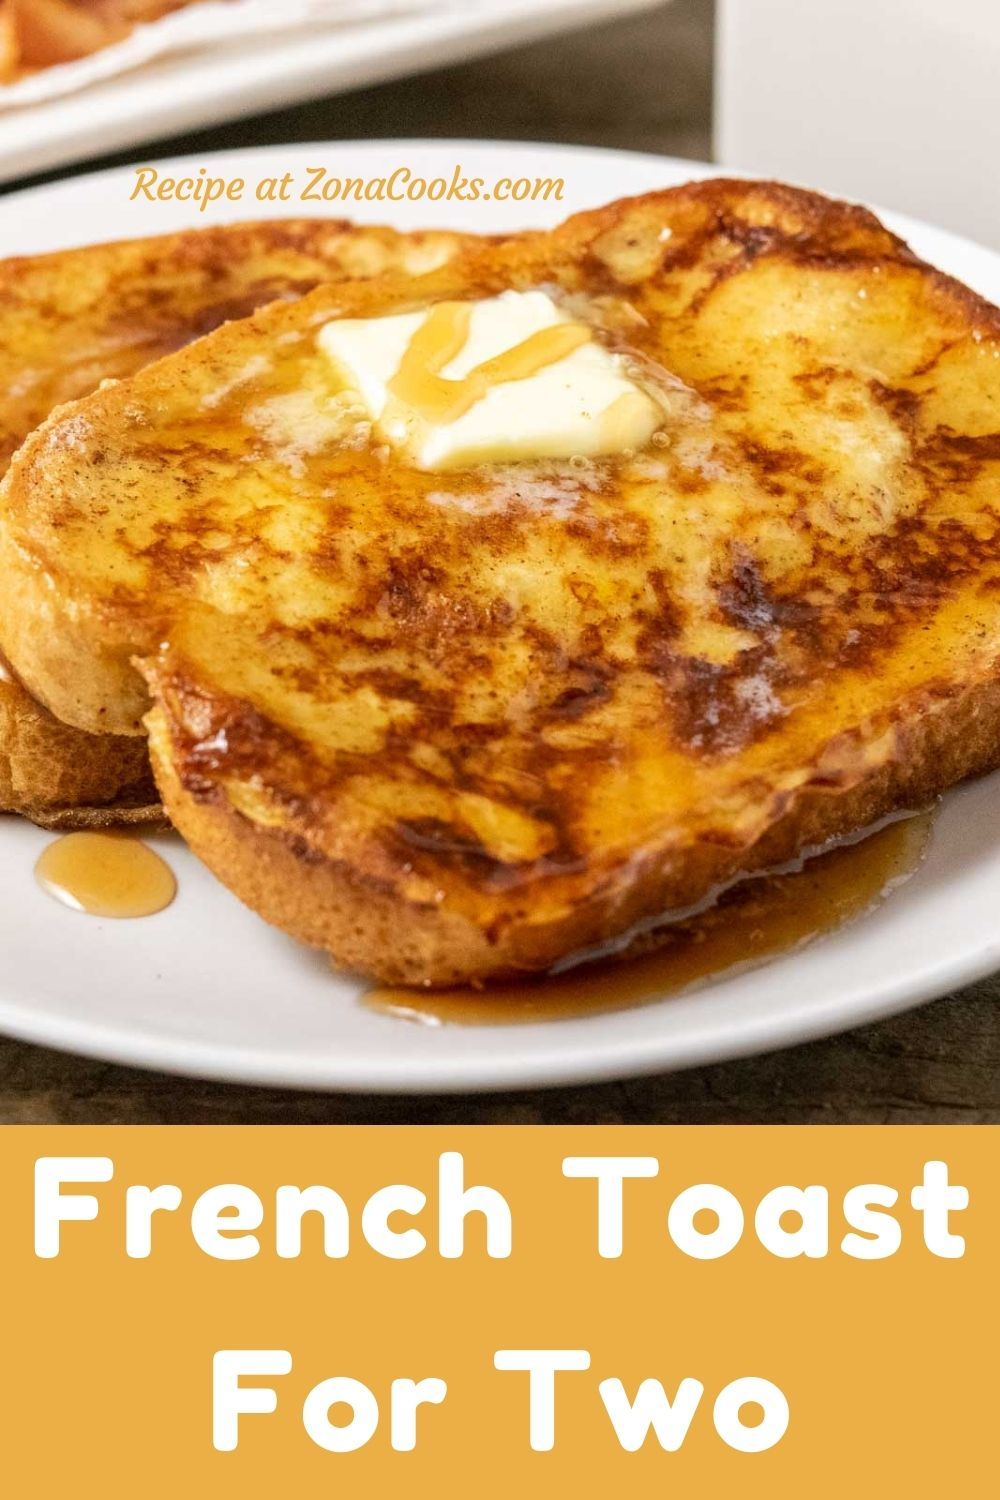 two thick slices of texas toast french toast topped with butter and syrup and text reading french toast for two recipe at zonacooks.com.